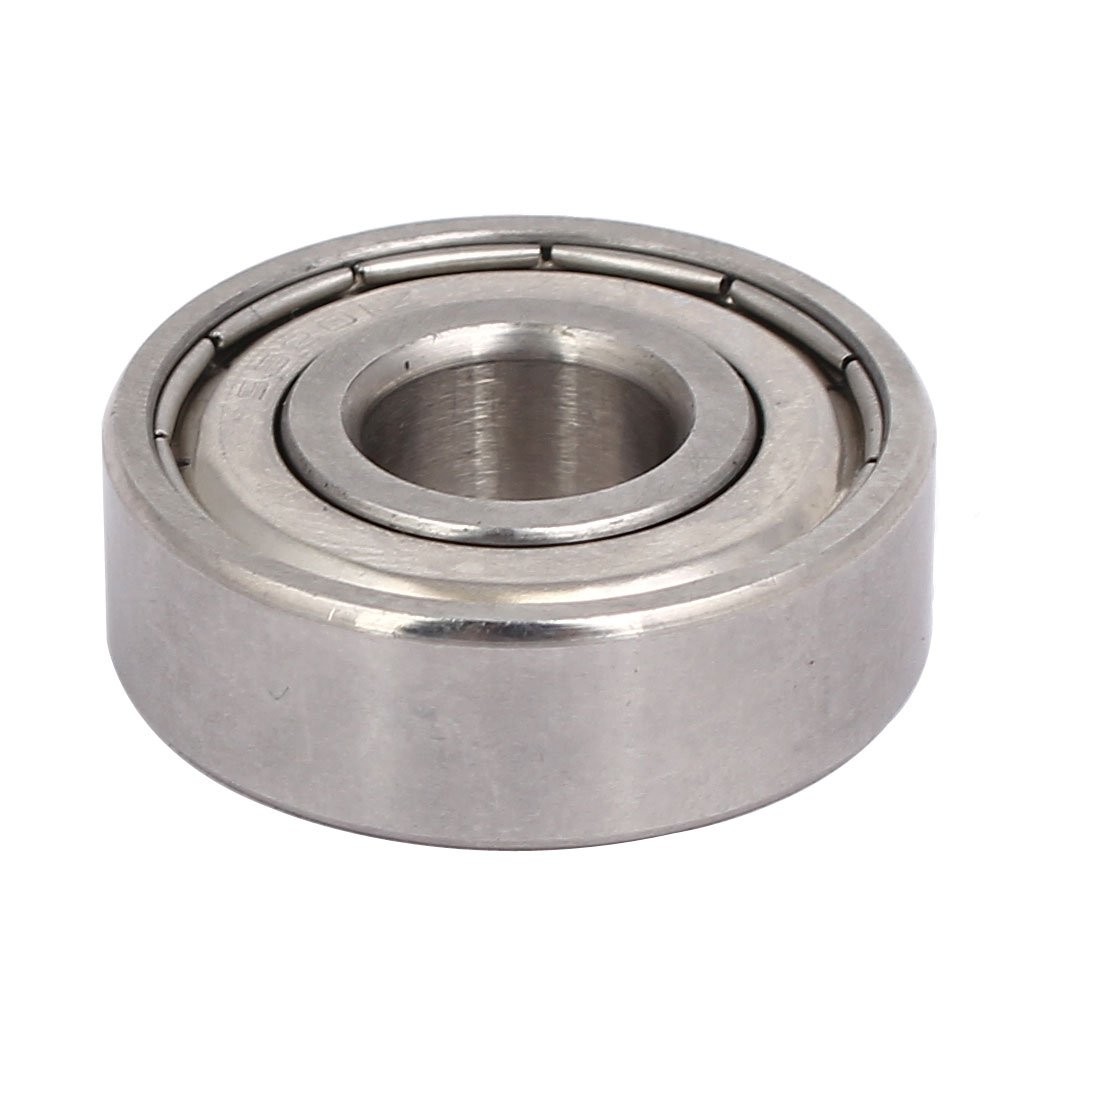 Aexit 6201 32mmx12mmx10mm Radial Ball Bearings Stainless Steel Shielded Deep Groove Ball Deep Groove Ball Bearings Bearing 2pcs